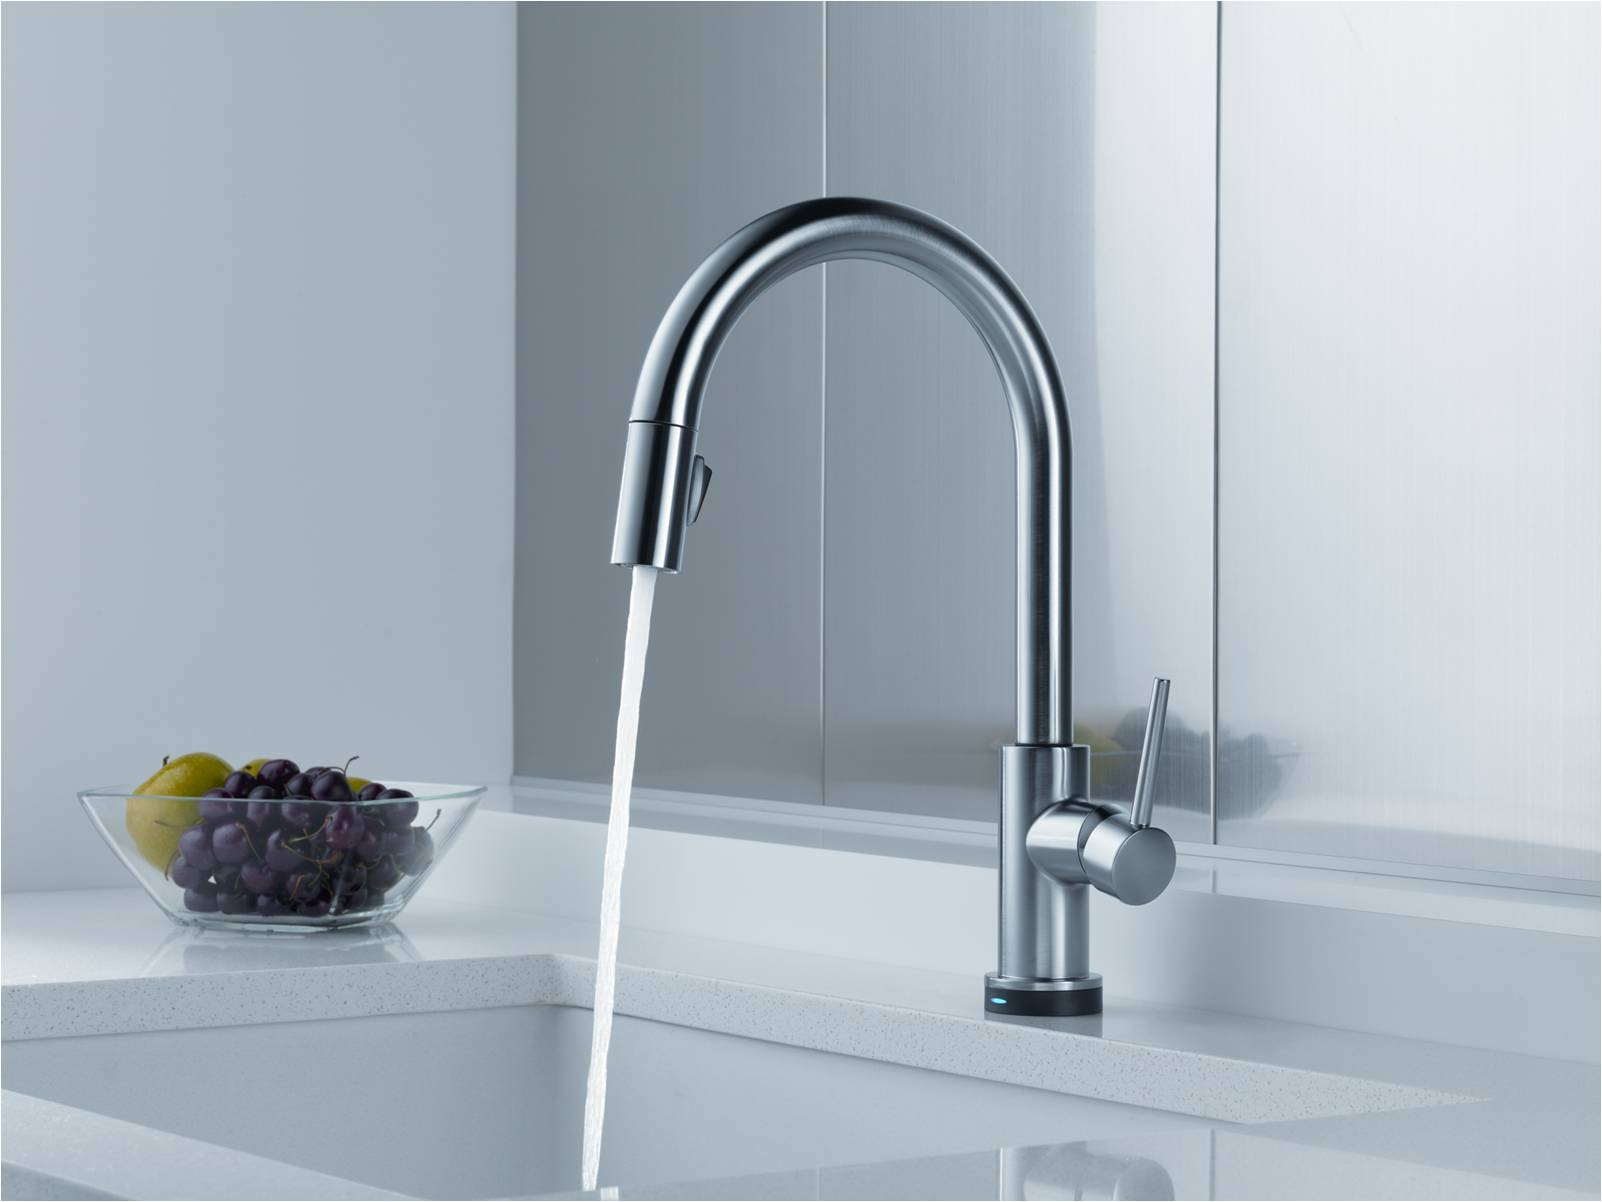 Ideas, delta drinking water faucet stainless delta drinking water faucet stainless dining kitchen make your kitchen looks elegant with lavish 1602 x 1202  .